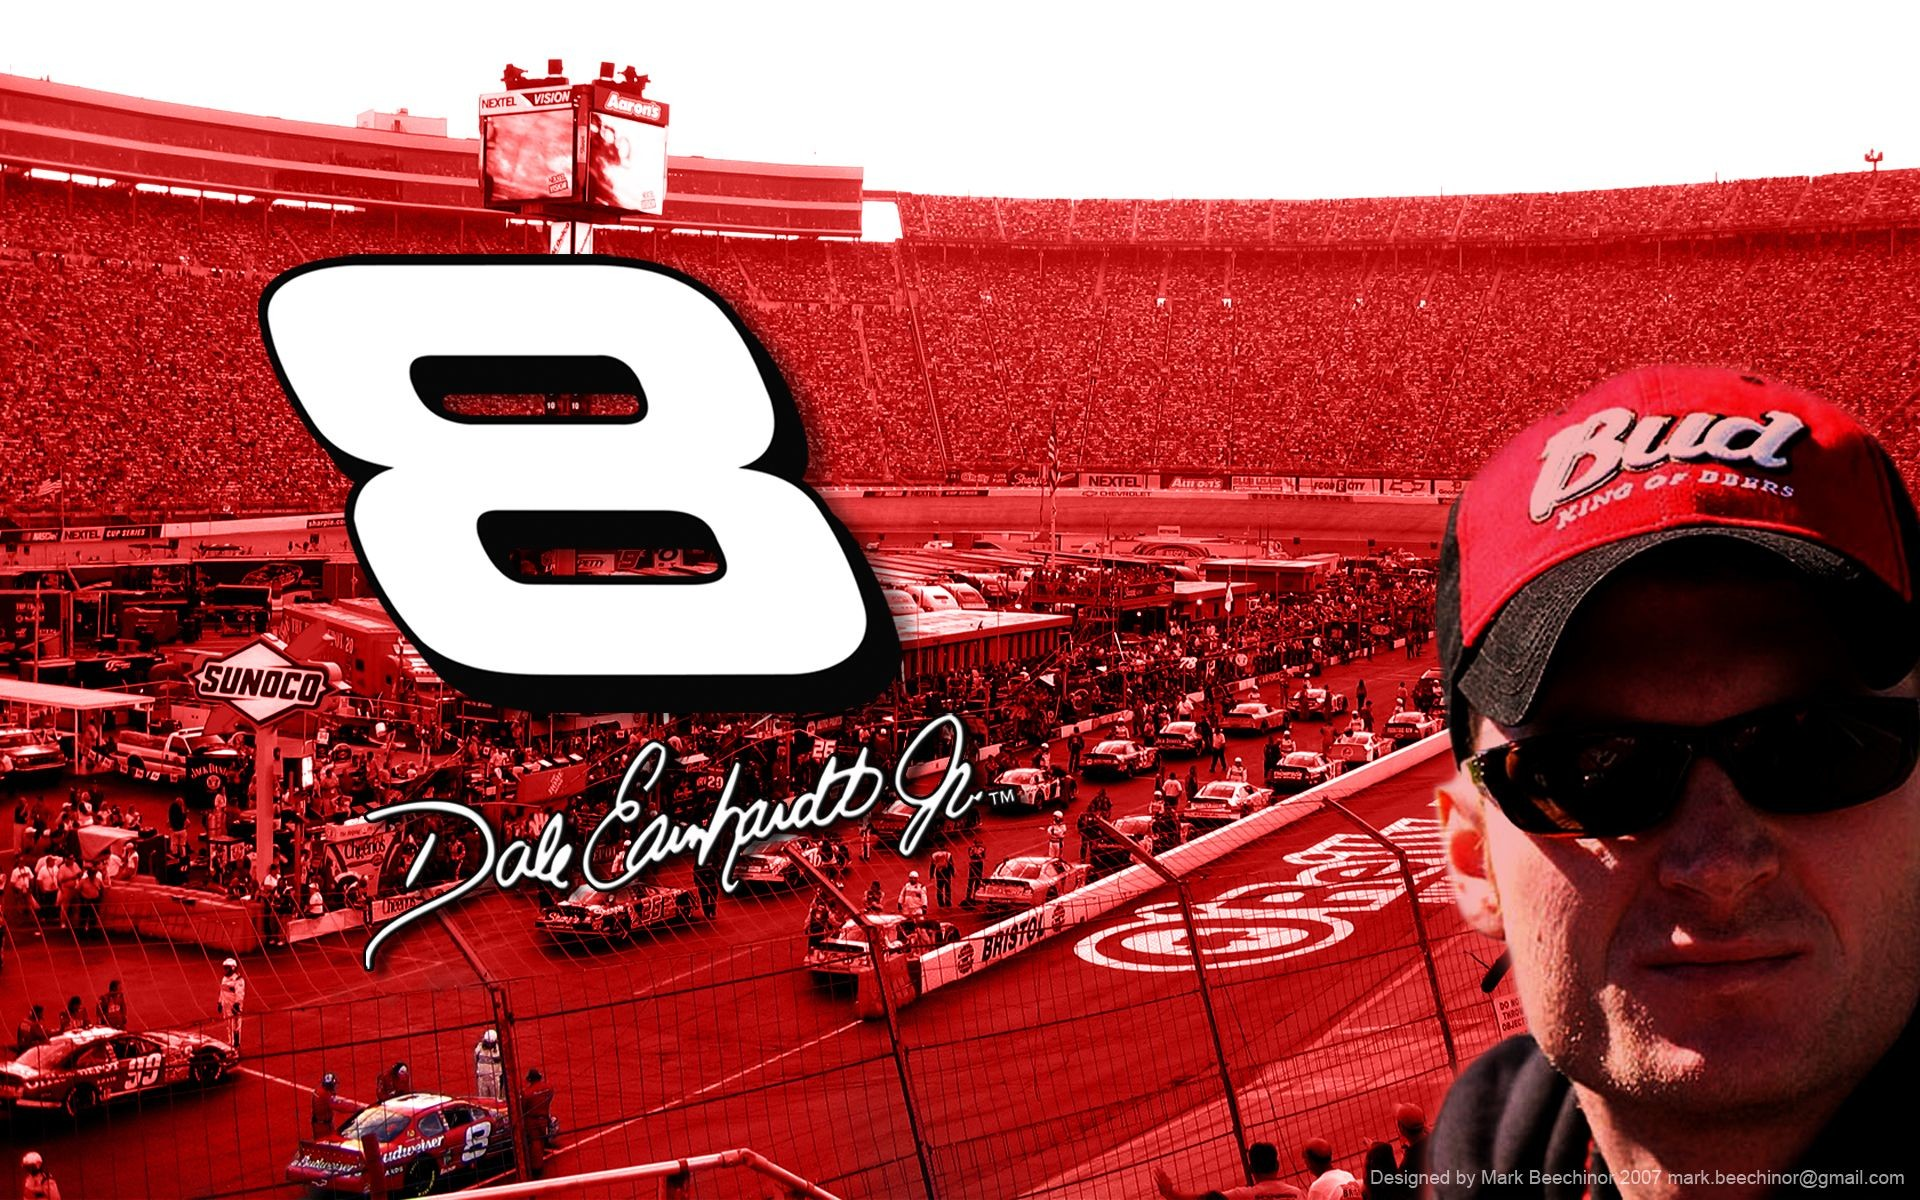 Dale Earnhardt Jr. at Bristol by DJShamrock on DeviantArt